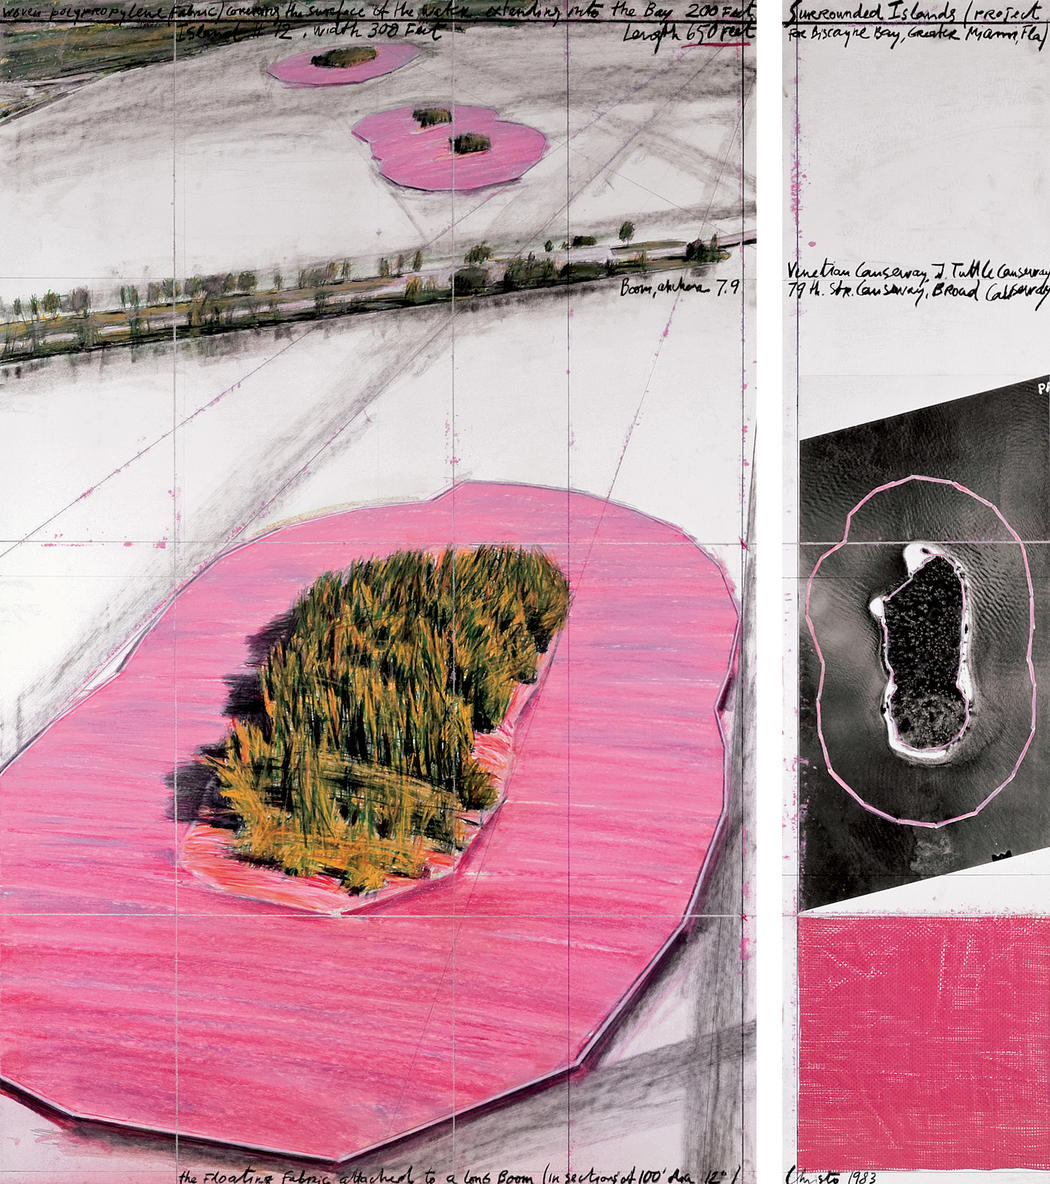 Drawing Fantasy Pink Islands Installation in Miami by land art artists Christo and Jeanne-Claude